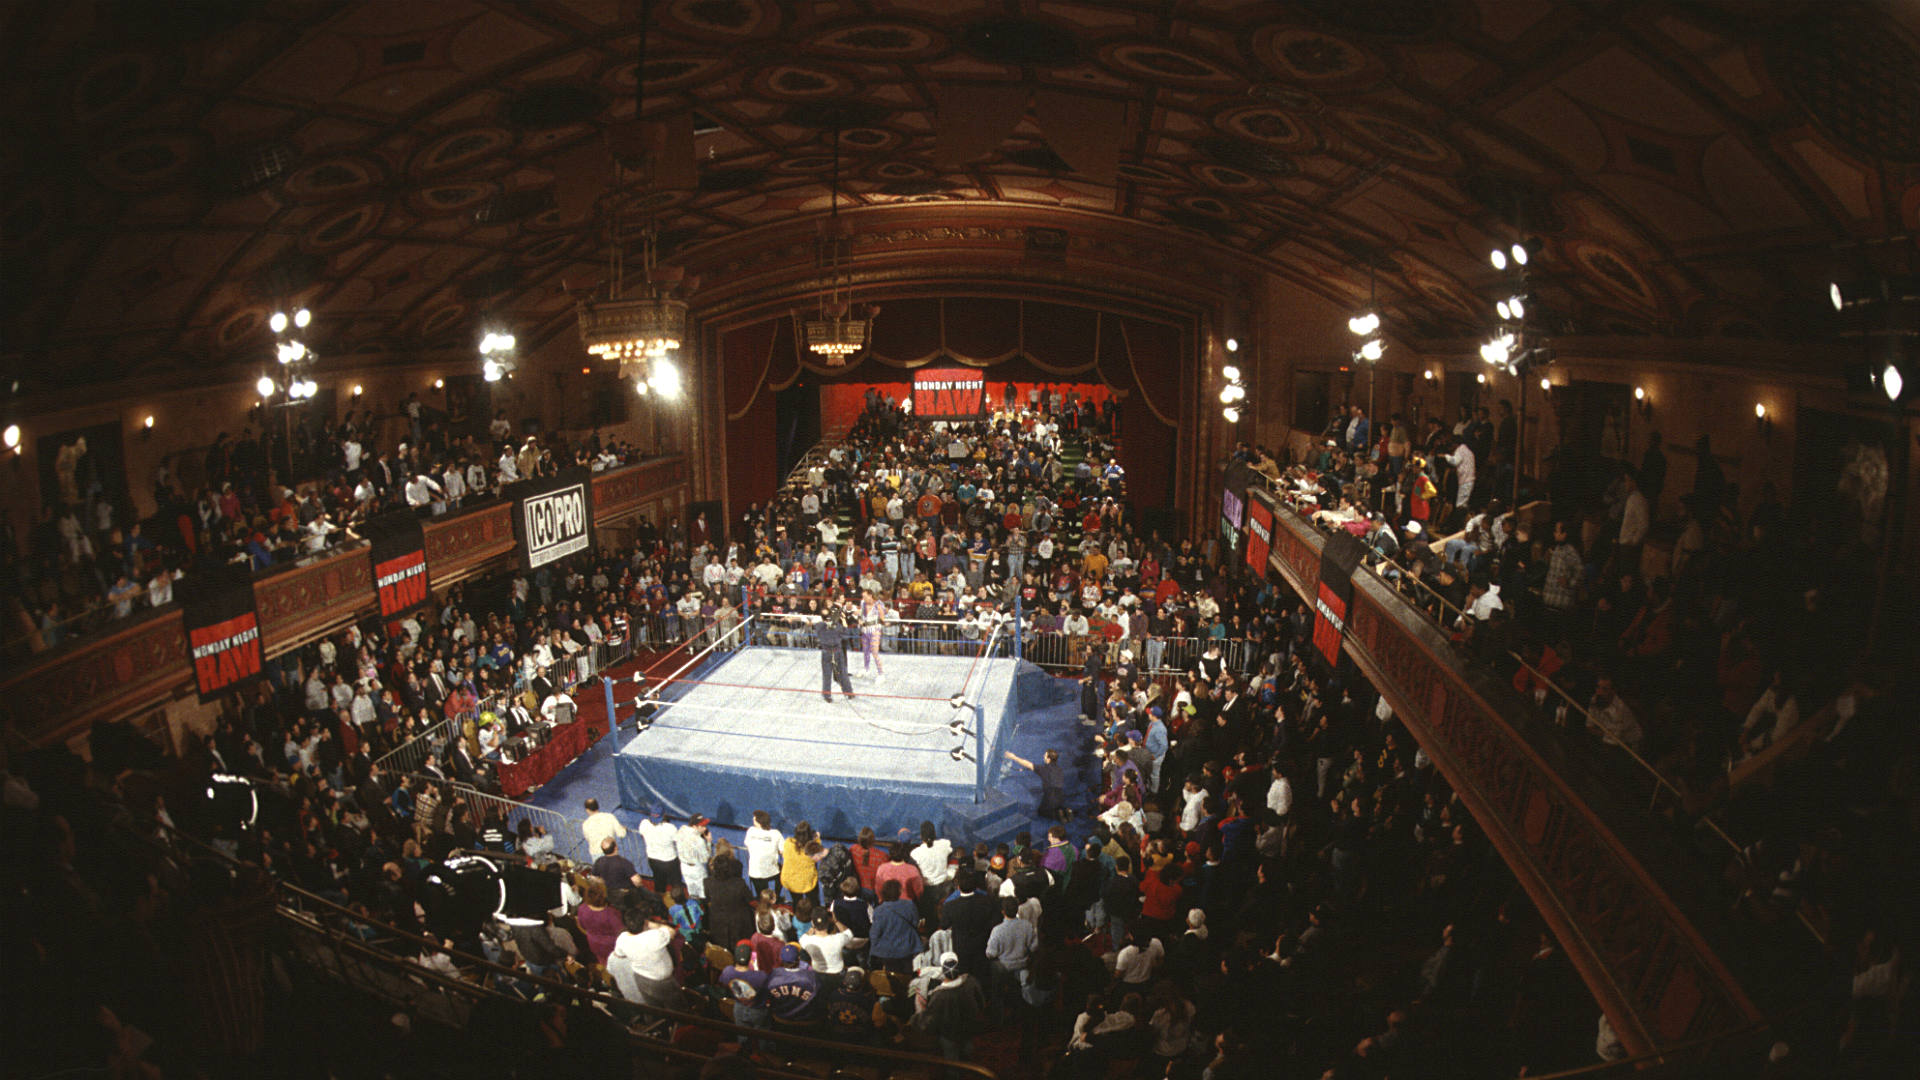 wwe 2018 ppv schedule: dates, events, venues | wwe | sporting news